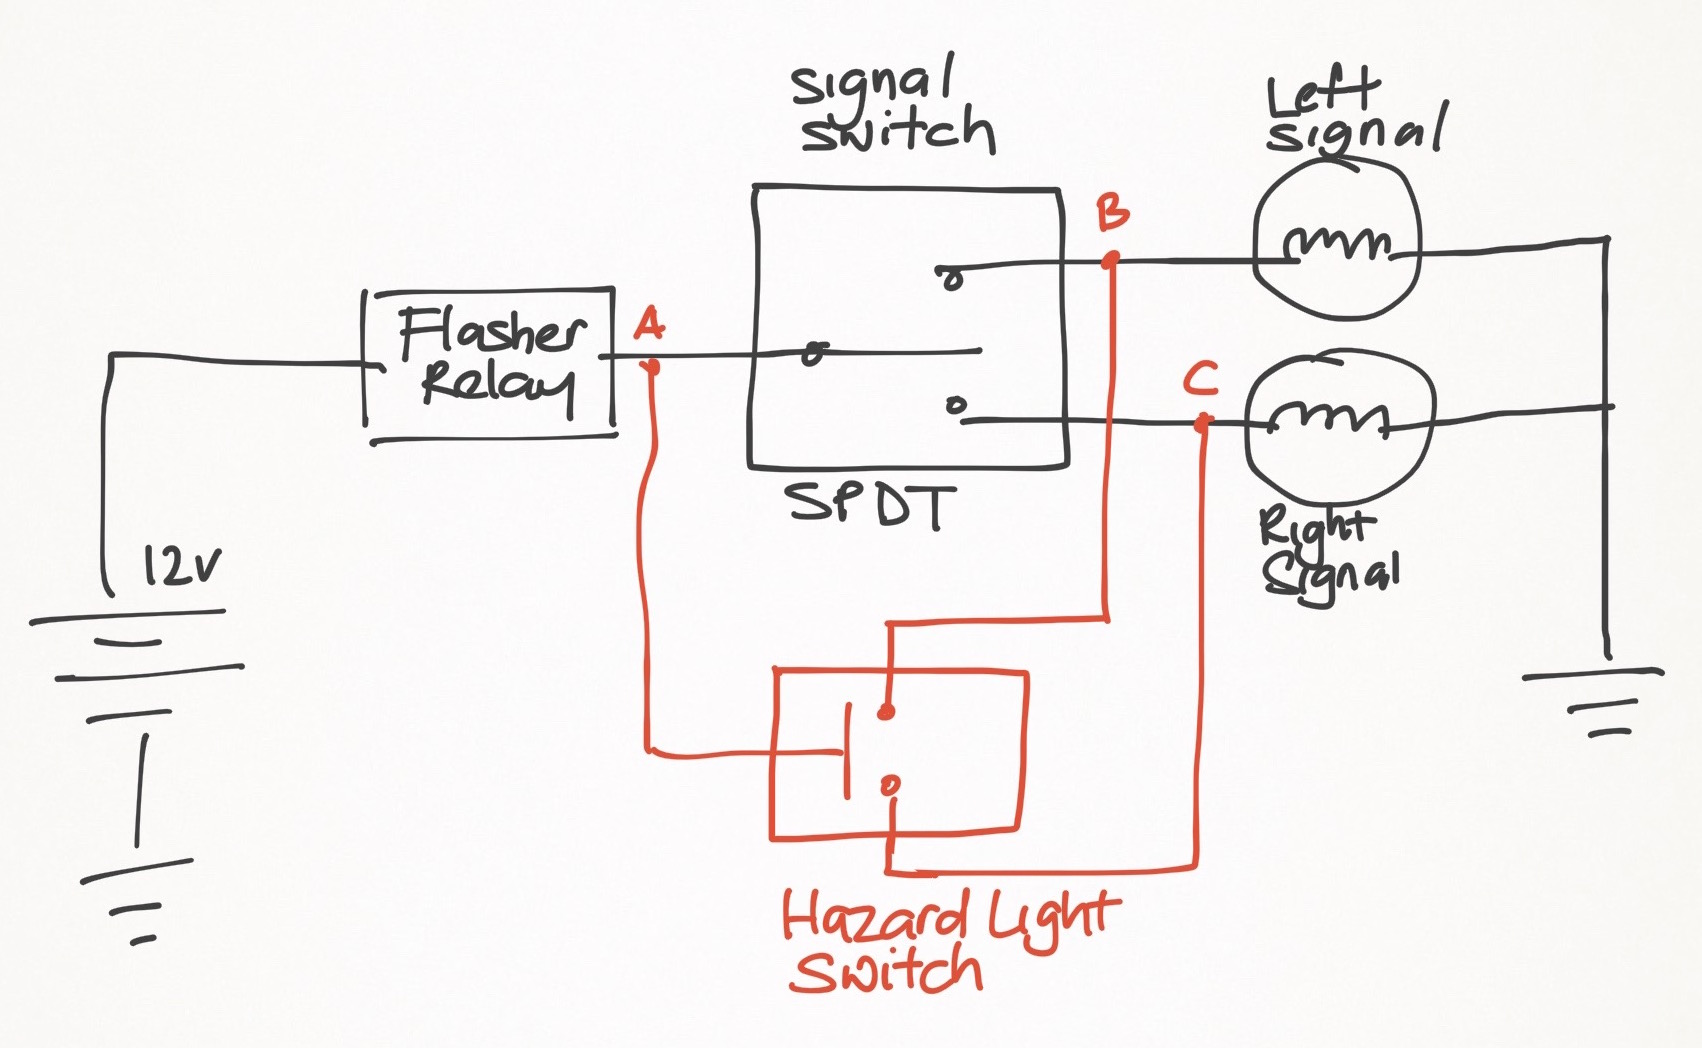 a Fog Light Wiring Diagram | Wiring Library A Fog Light Wiring Diagram on